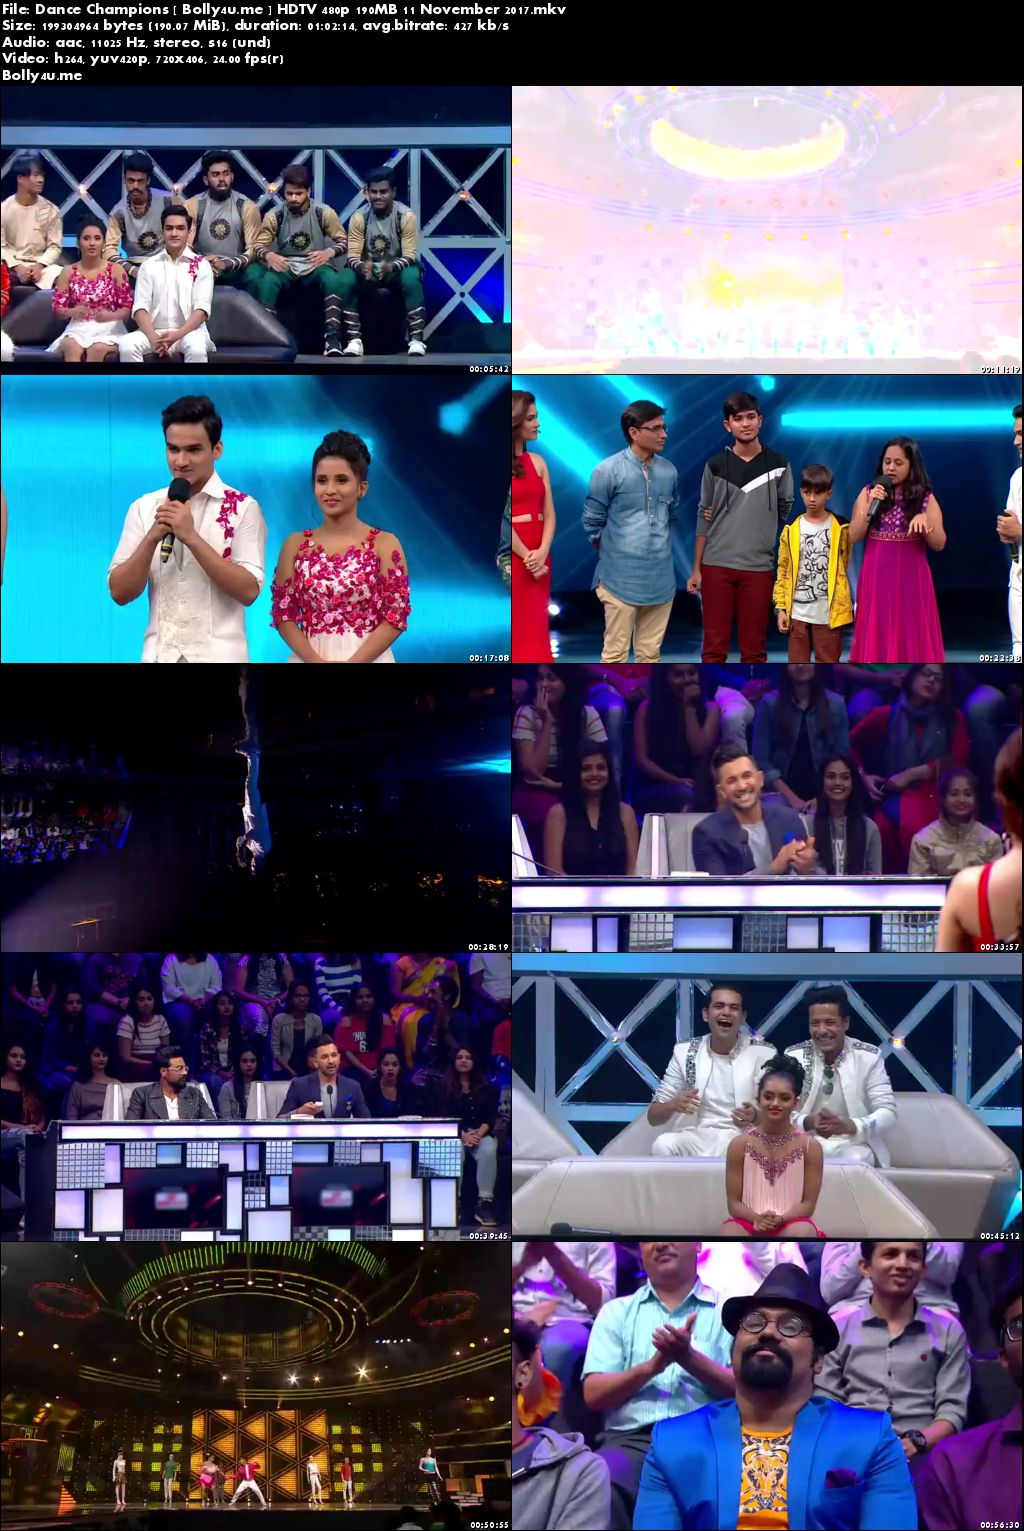 Dance Champions HDTV 480p 200MB 11 November 2017 Download